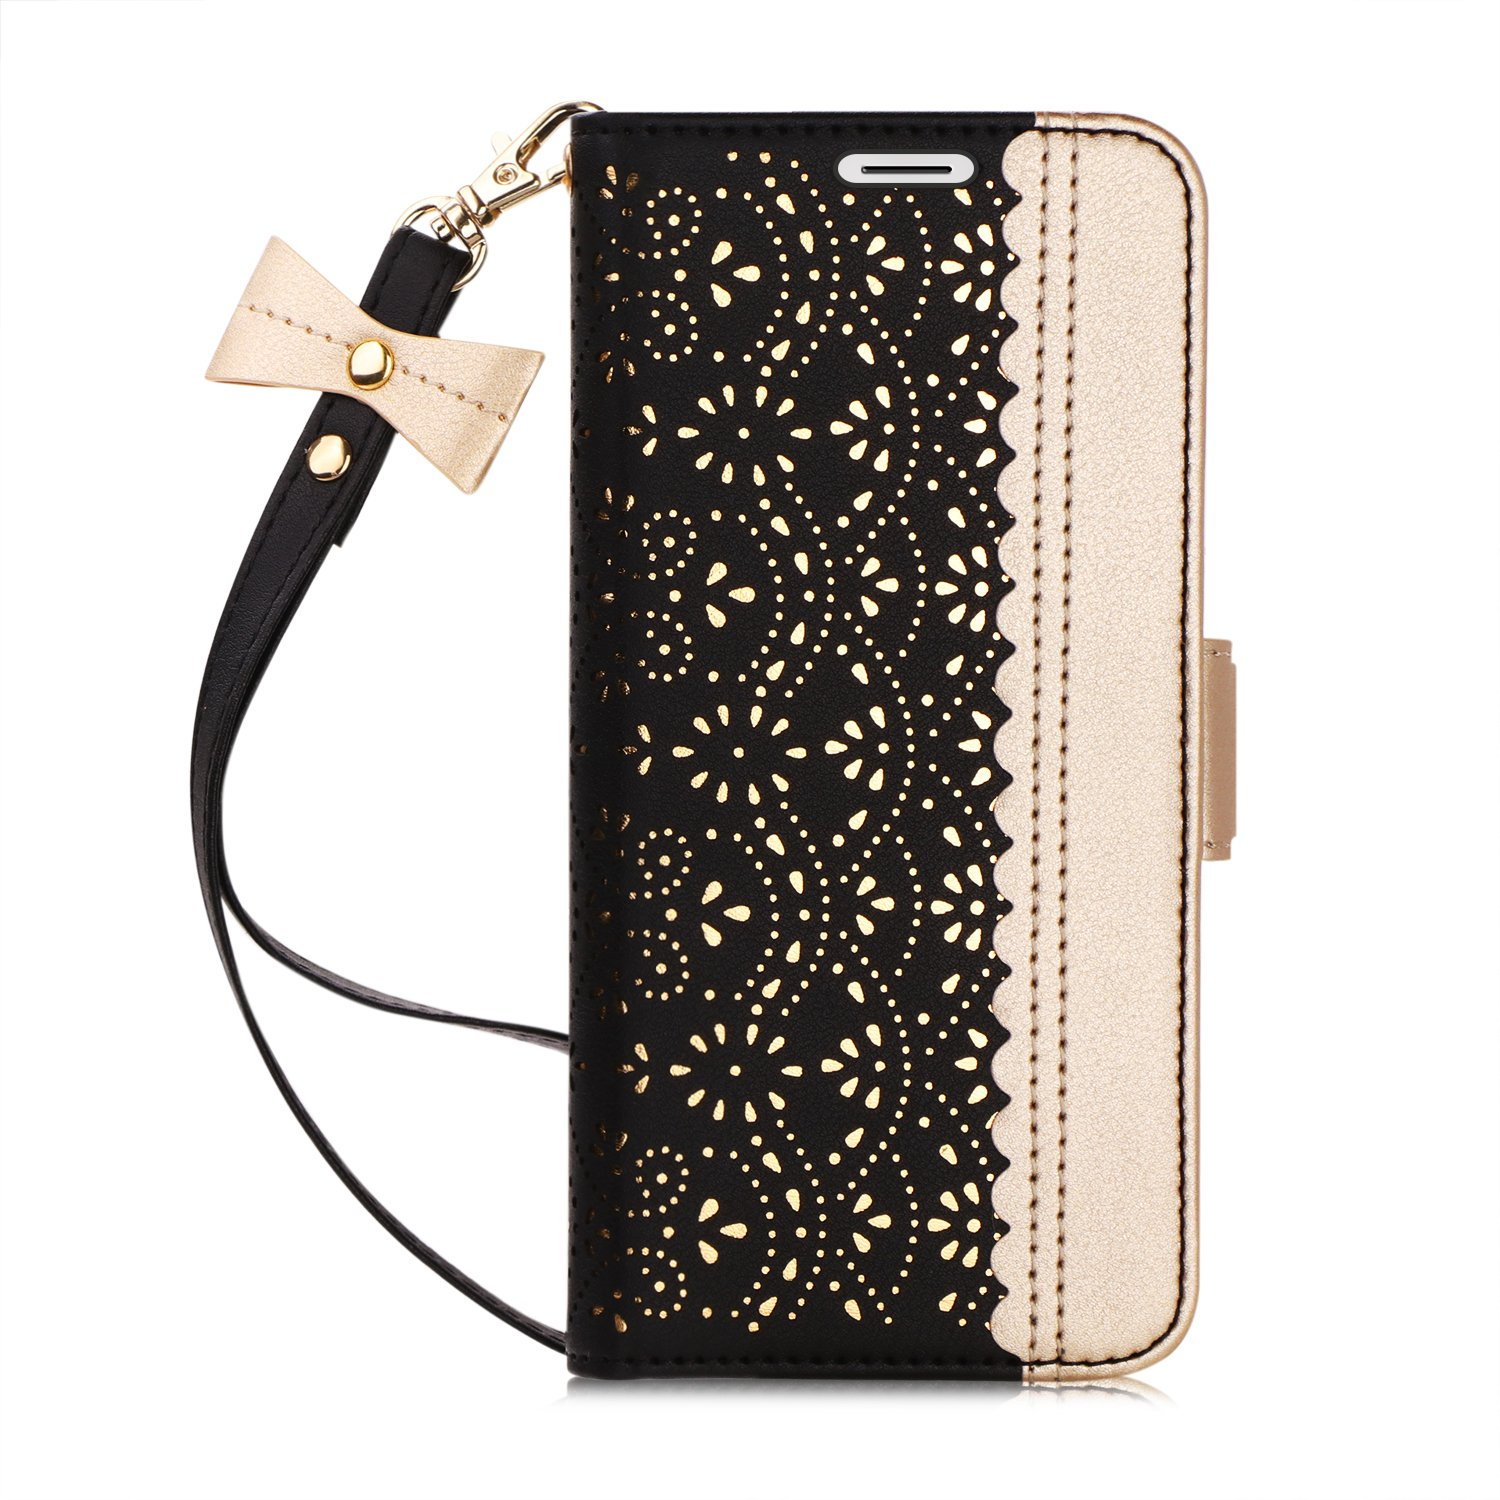 Galaxy S9 Case, WWW Samsung Galaxy S9 Wallet Case Leather Case [Luxurious Romantic Carved Flower][Inside Makeup Mirror][Kickstand Function] Flip Cover for Samsung Galaxy S9 (2018) Black HONGKONG FENGYI TRADING CO. LIMITED